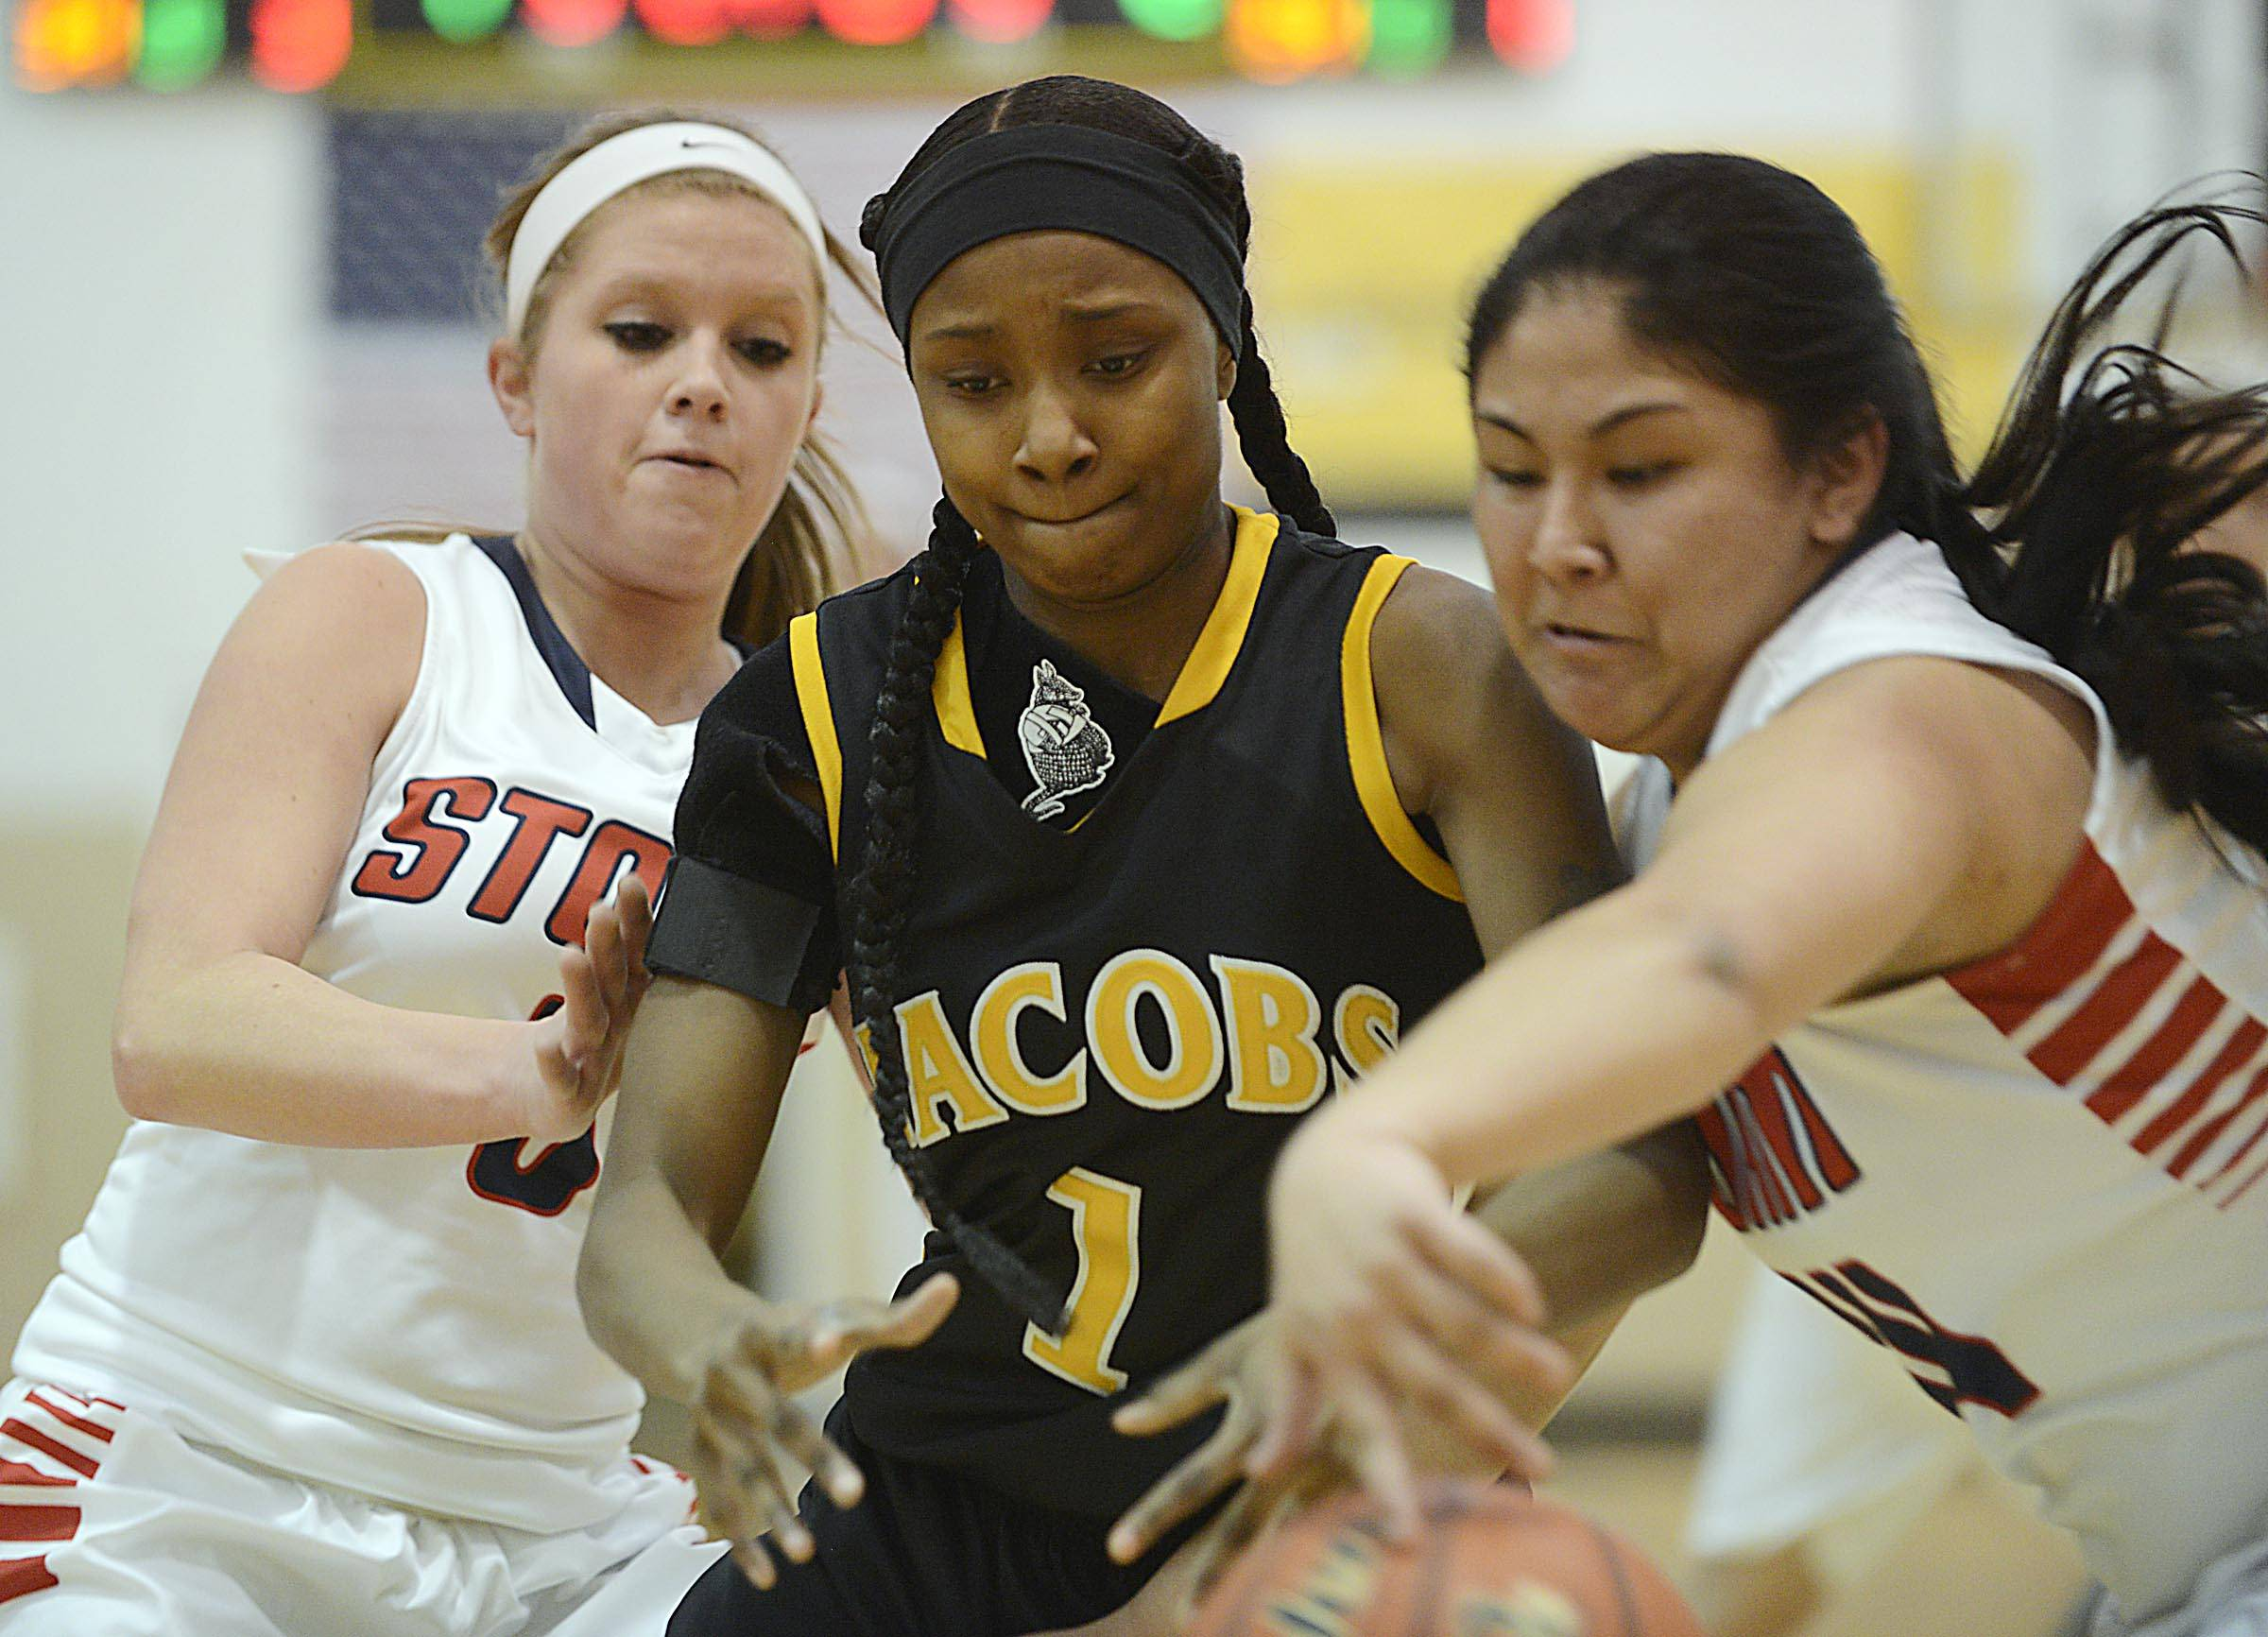 South Elgin's Nadia Yang steals a pass for Jacobs' Glenita Williams Tuesday in a Regional semifinal game in Algonquin. At left is South Elgin's Mackie Kelleher.